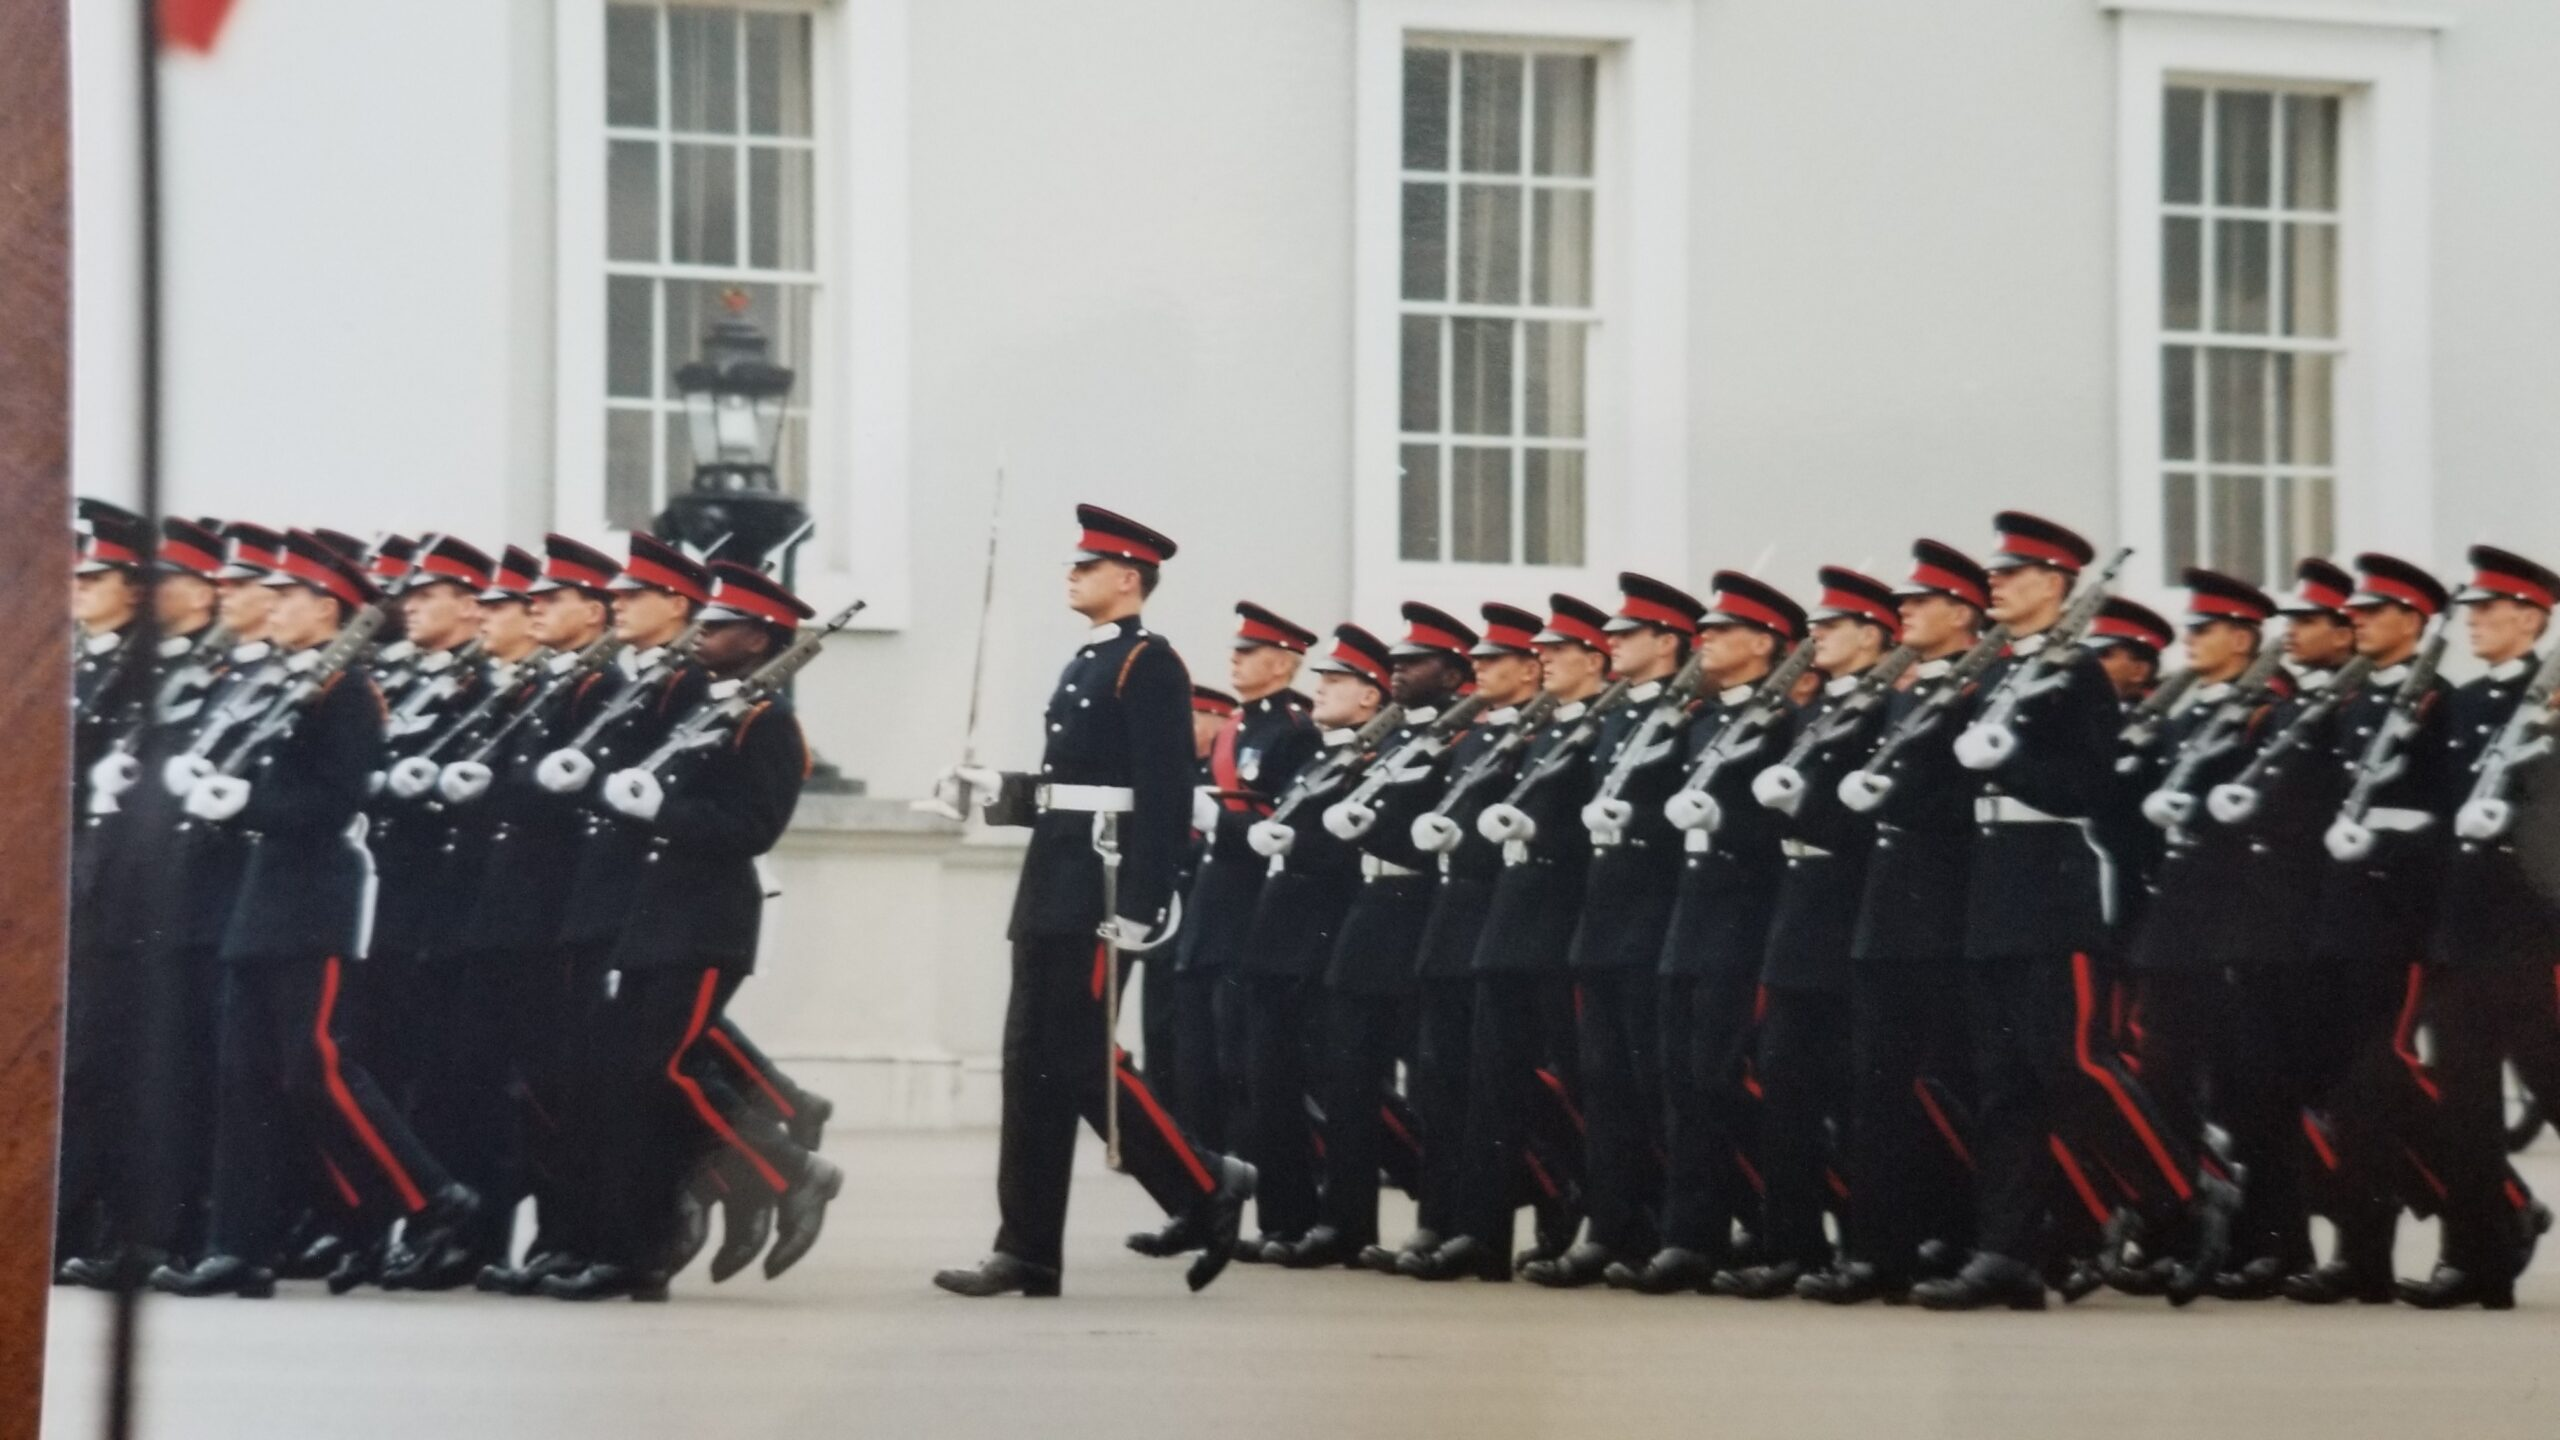 sandhurst parade scaled Nigel Yates Official Homepage Nigel